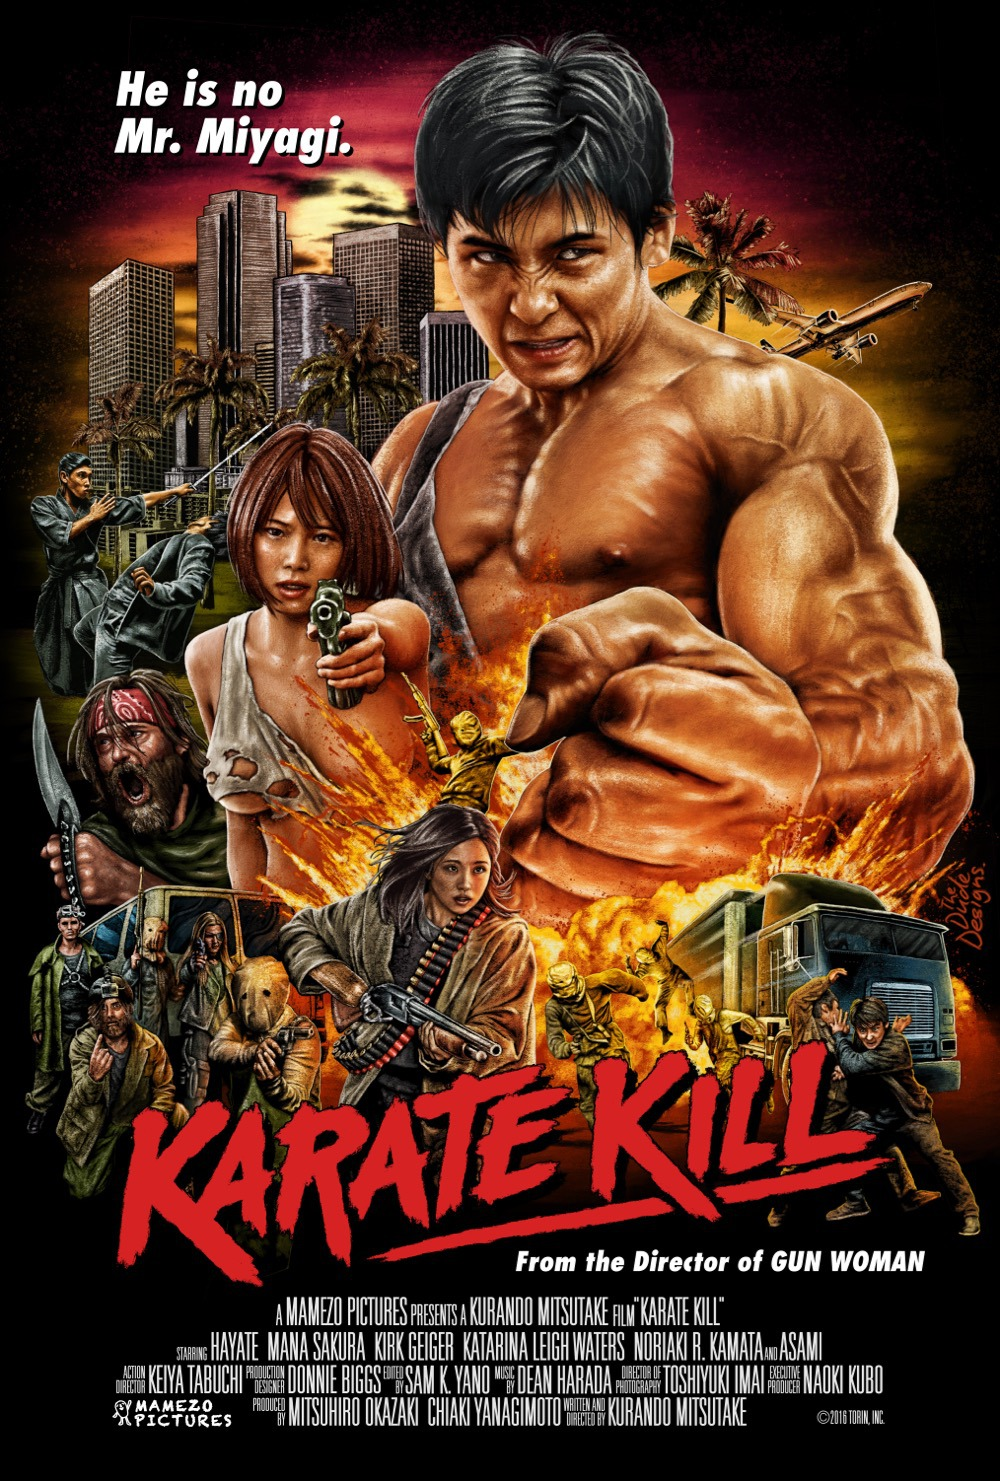 wild-trailer-for-a-b-movie-action-film-called-karate-kill-hes-no-mr-miyagi2